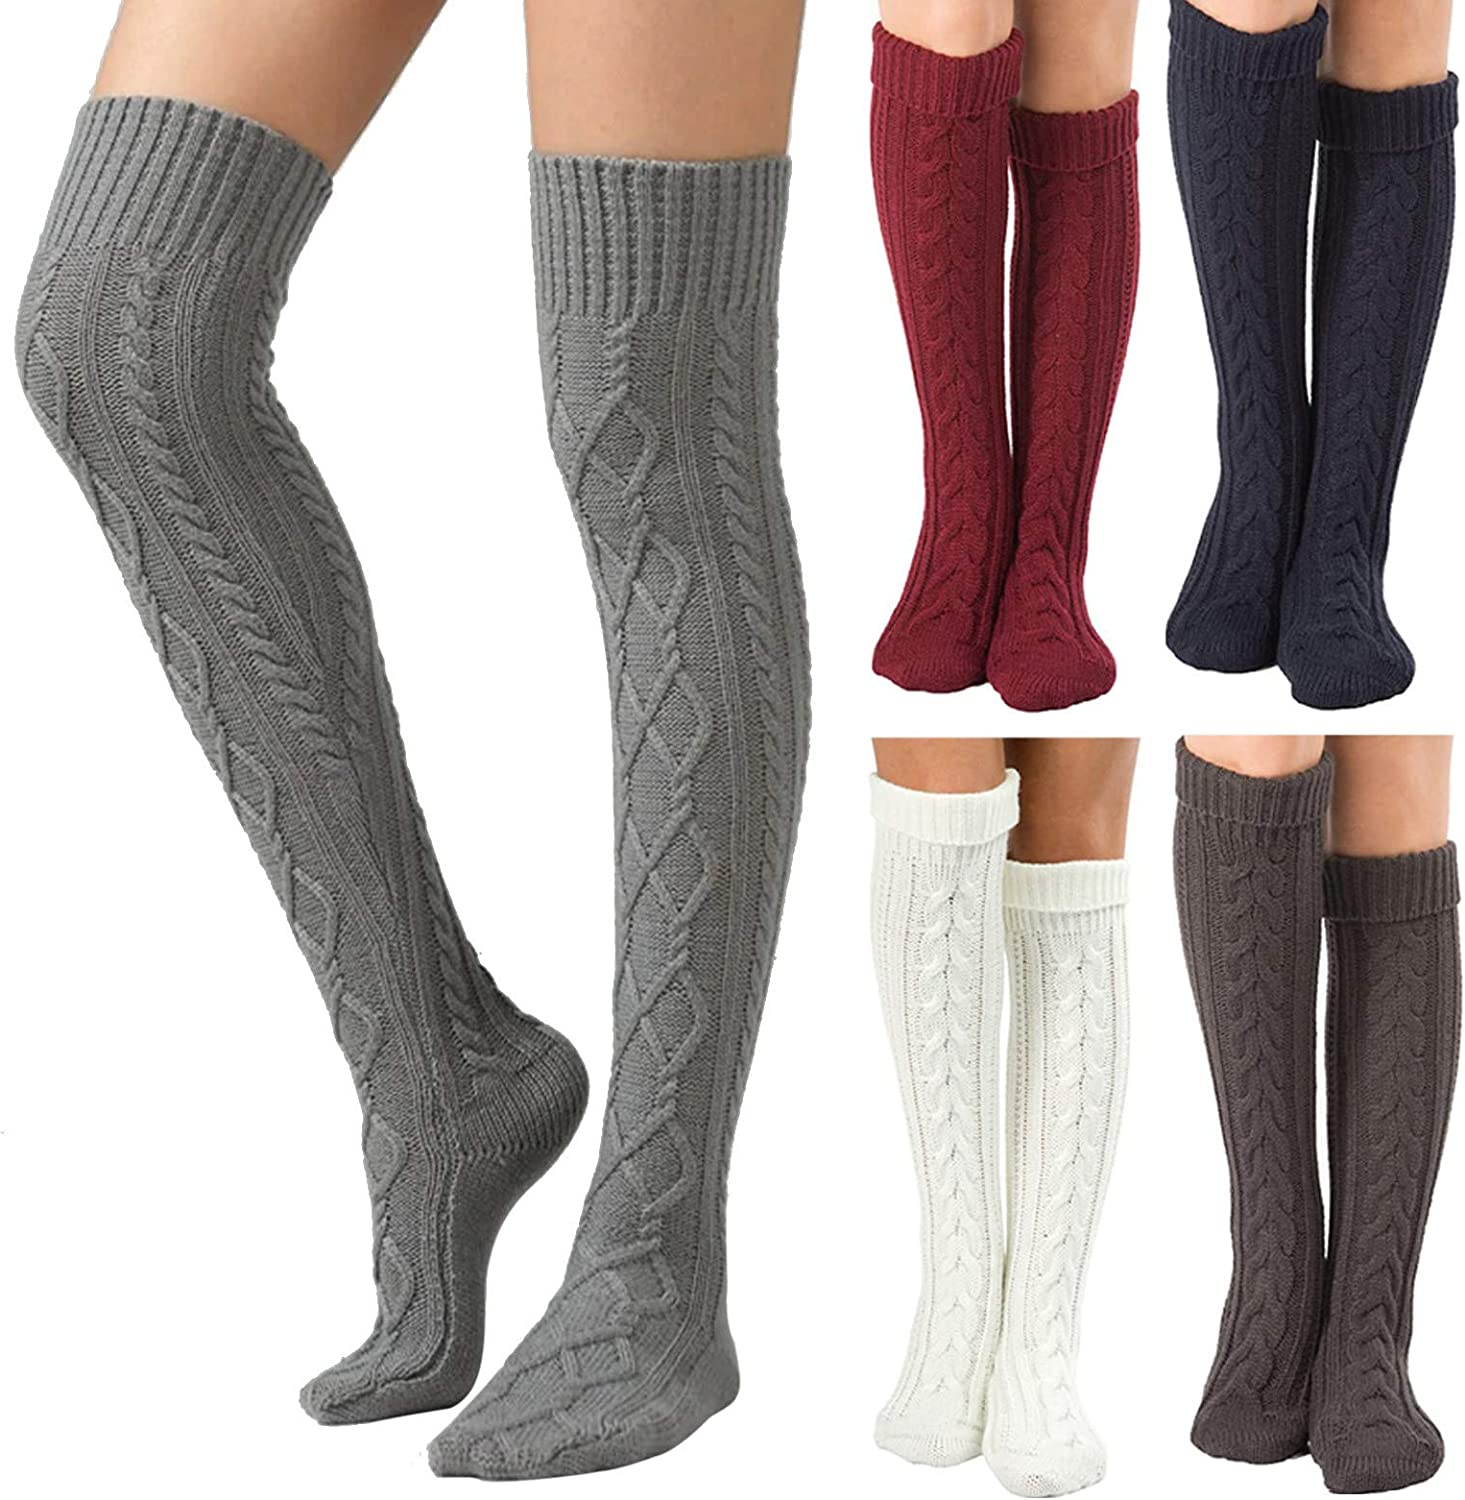 GTYX Women Thigh High Over The Knee Socks 1 Pair Hosiery Leg Warmers Solid Color Leggings Extra Long Boot Sock Stockings